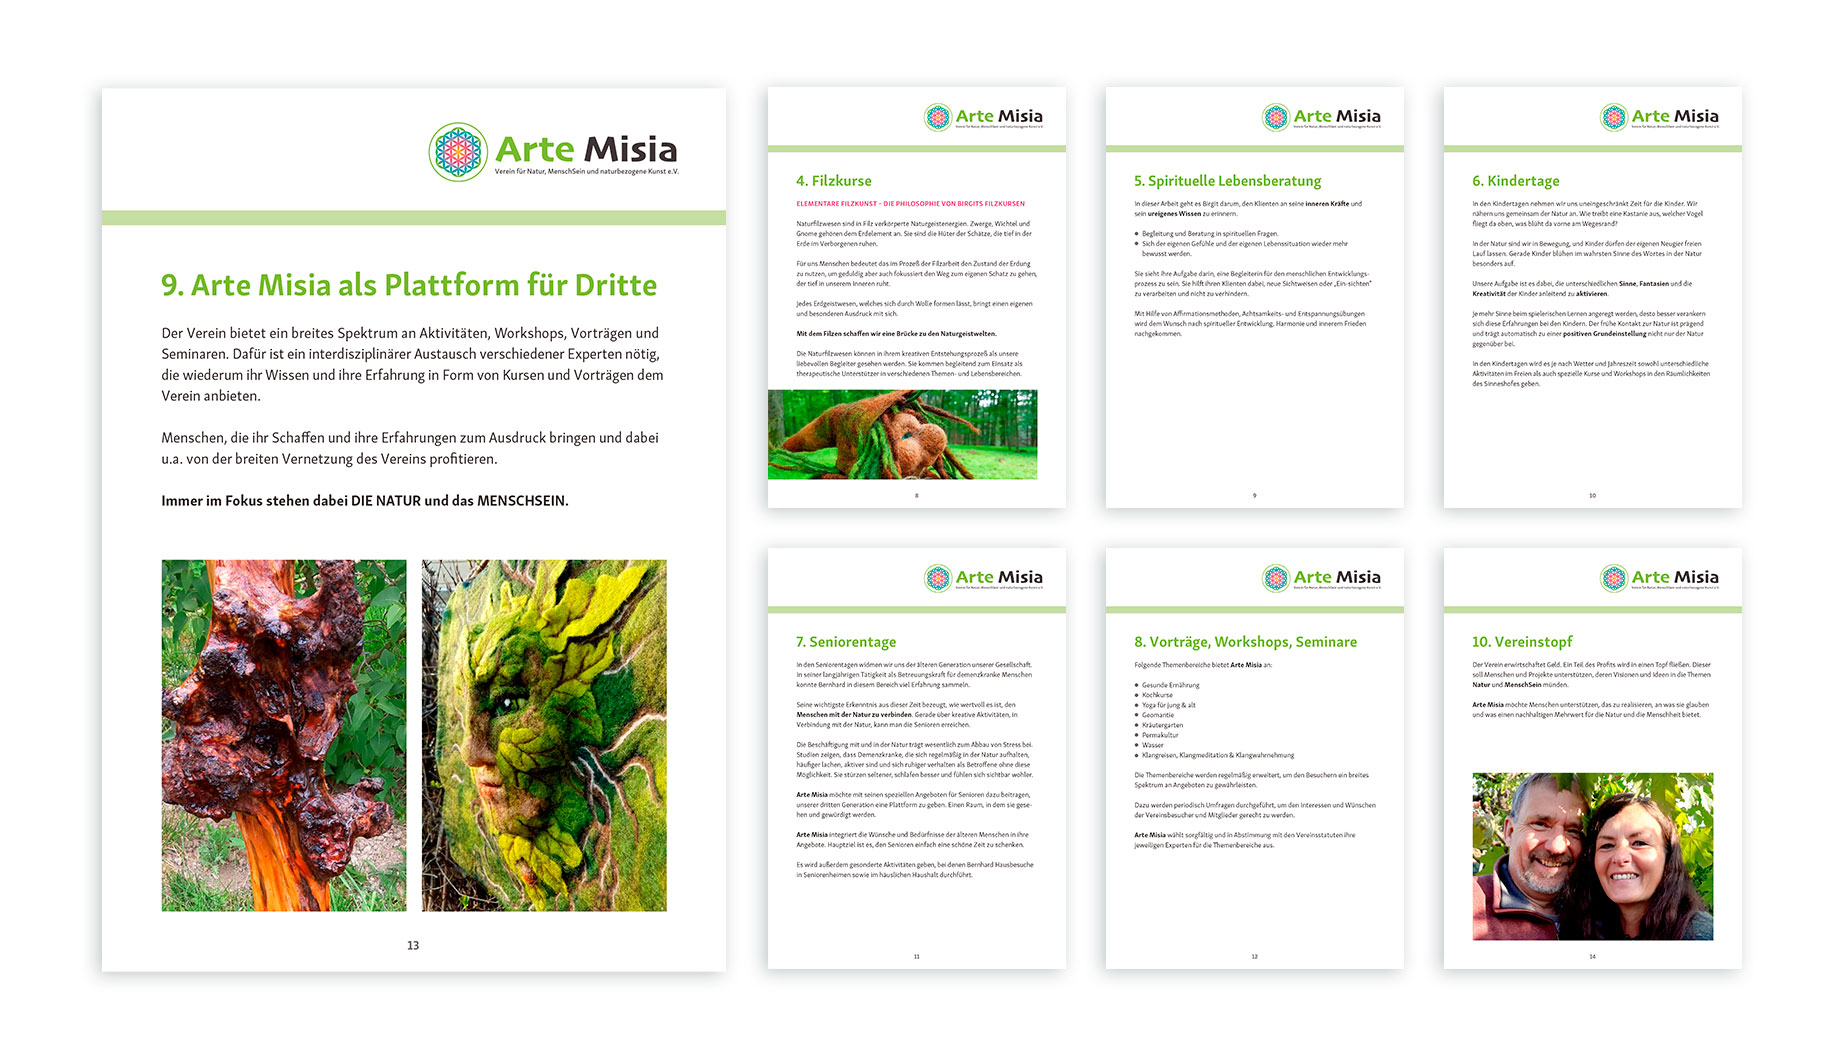 Arte Misia - Art Director - Corporate Identity - Corporate Text and Design - Brand Concept - Final Art